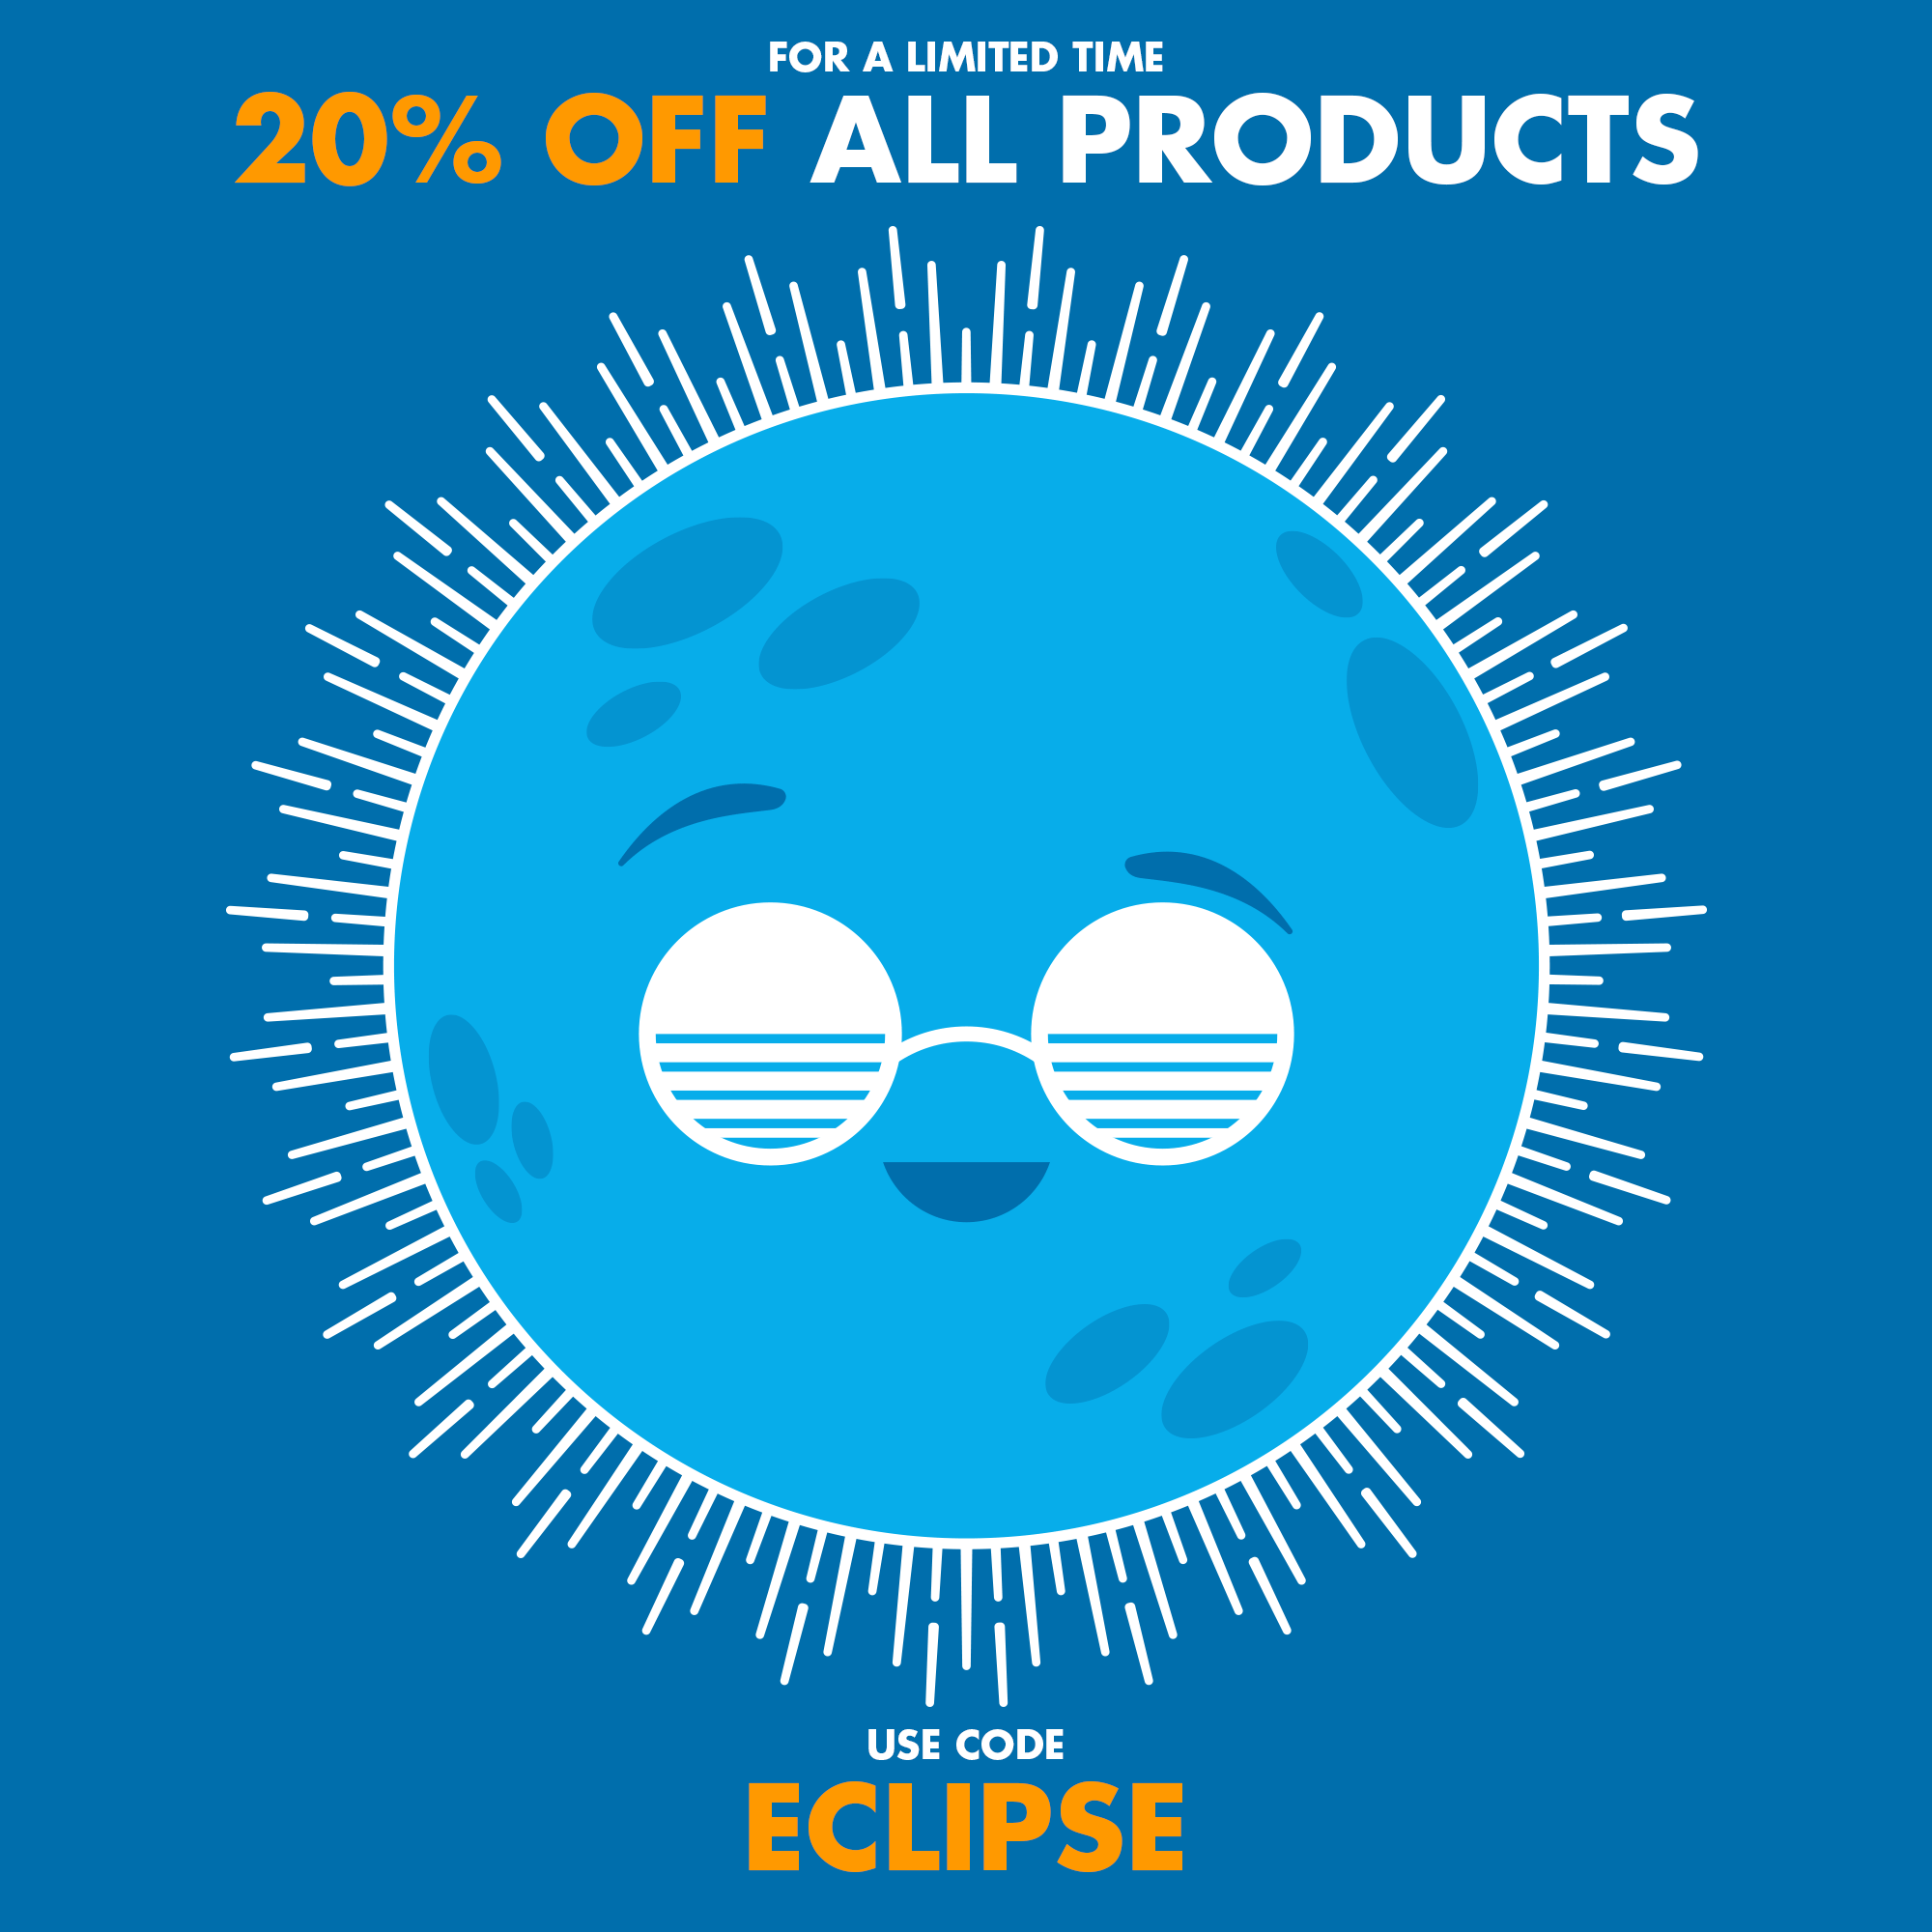 Eclipse Sale! 20% Off All Products!